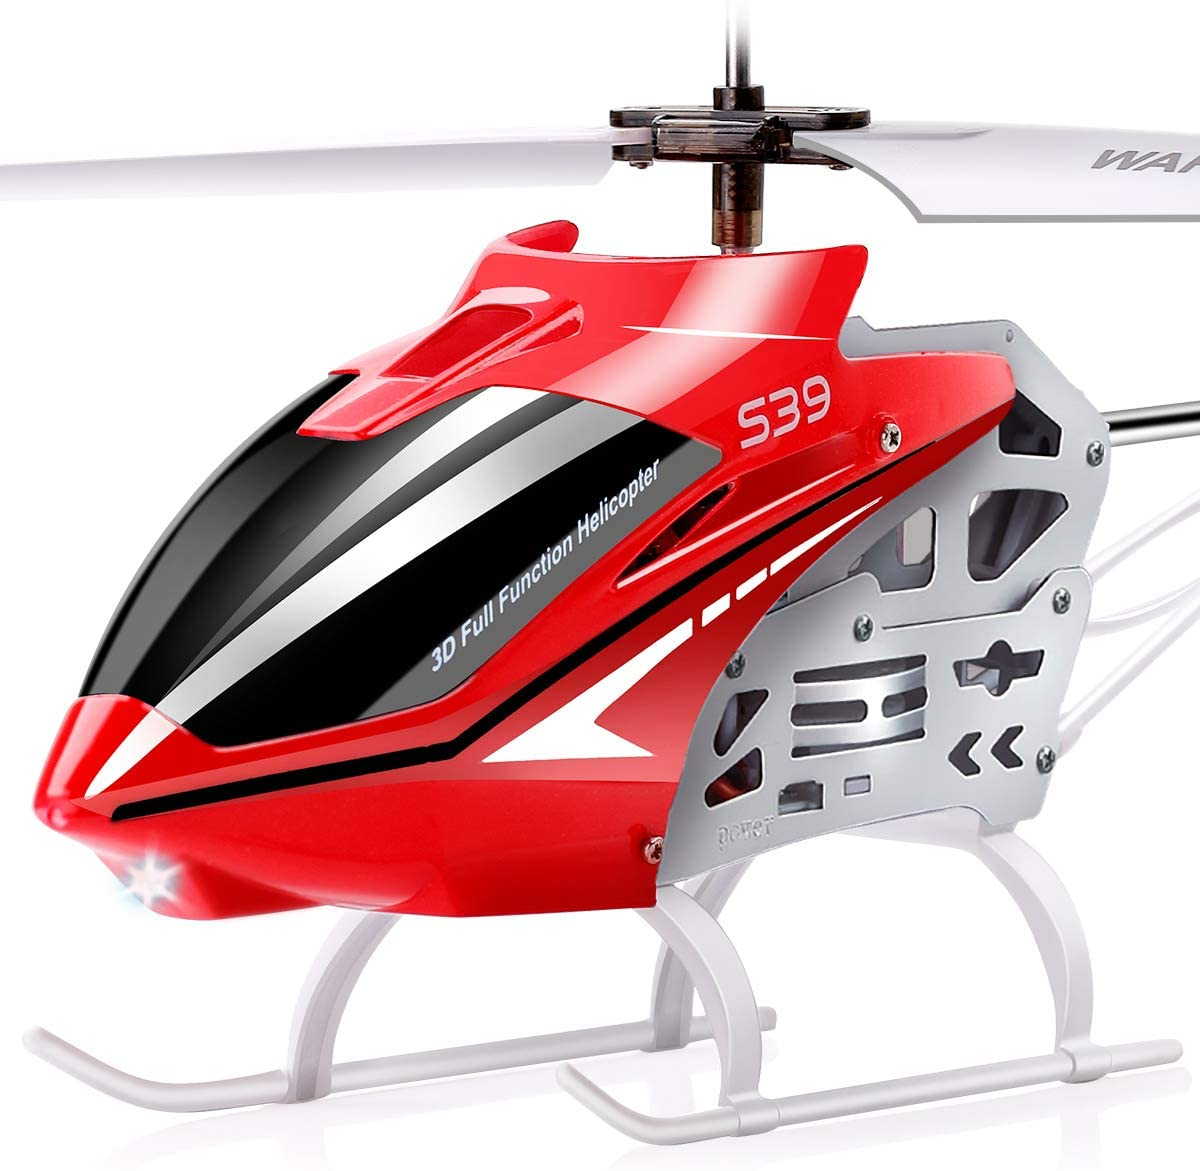 SYMA RC Helicopter 3.5 Channel